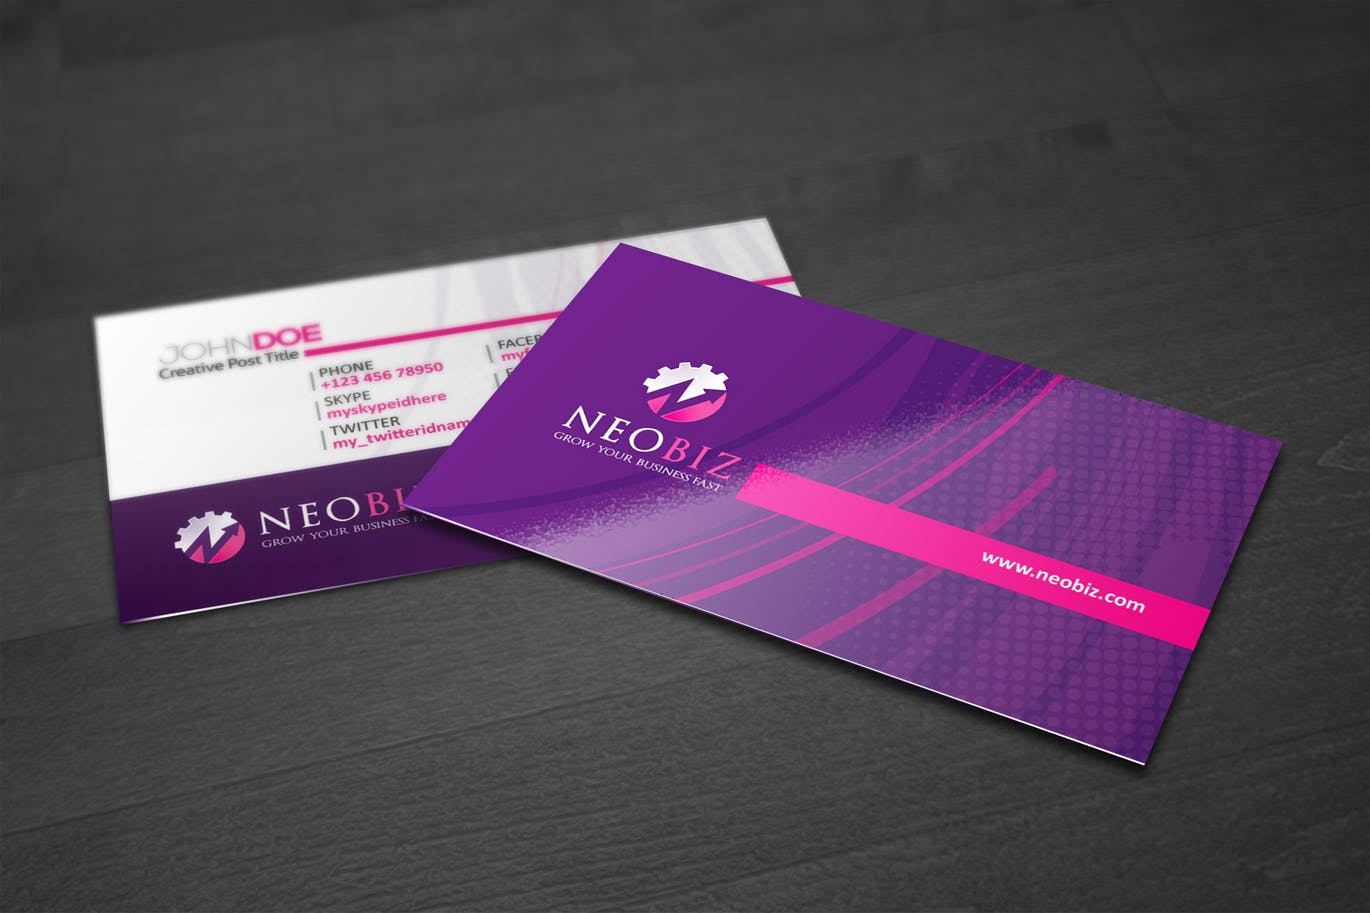 Gloss laminated business cards printing brooklyn printing in nyc business cards printing brooklyn colourmoves